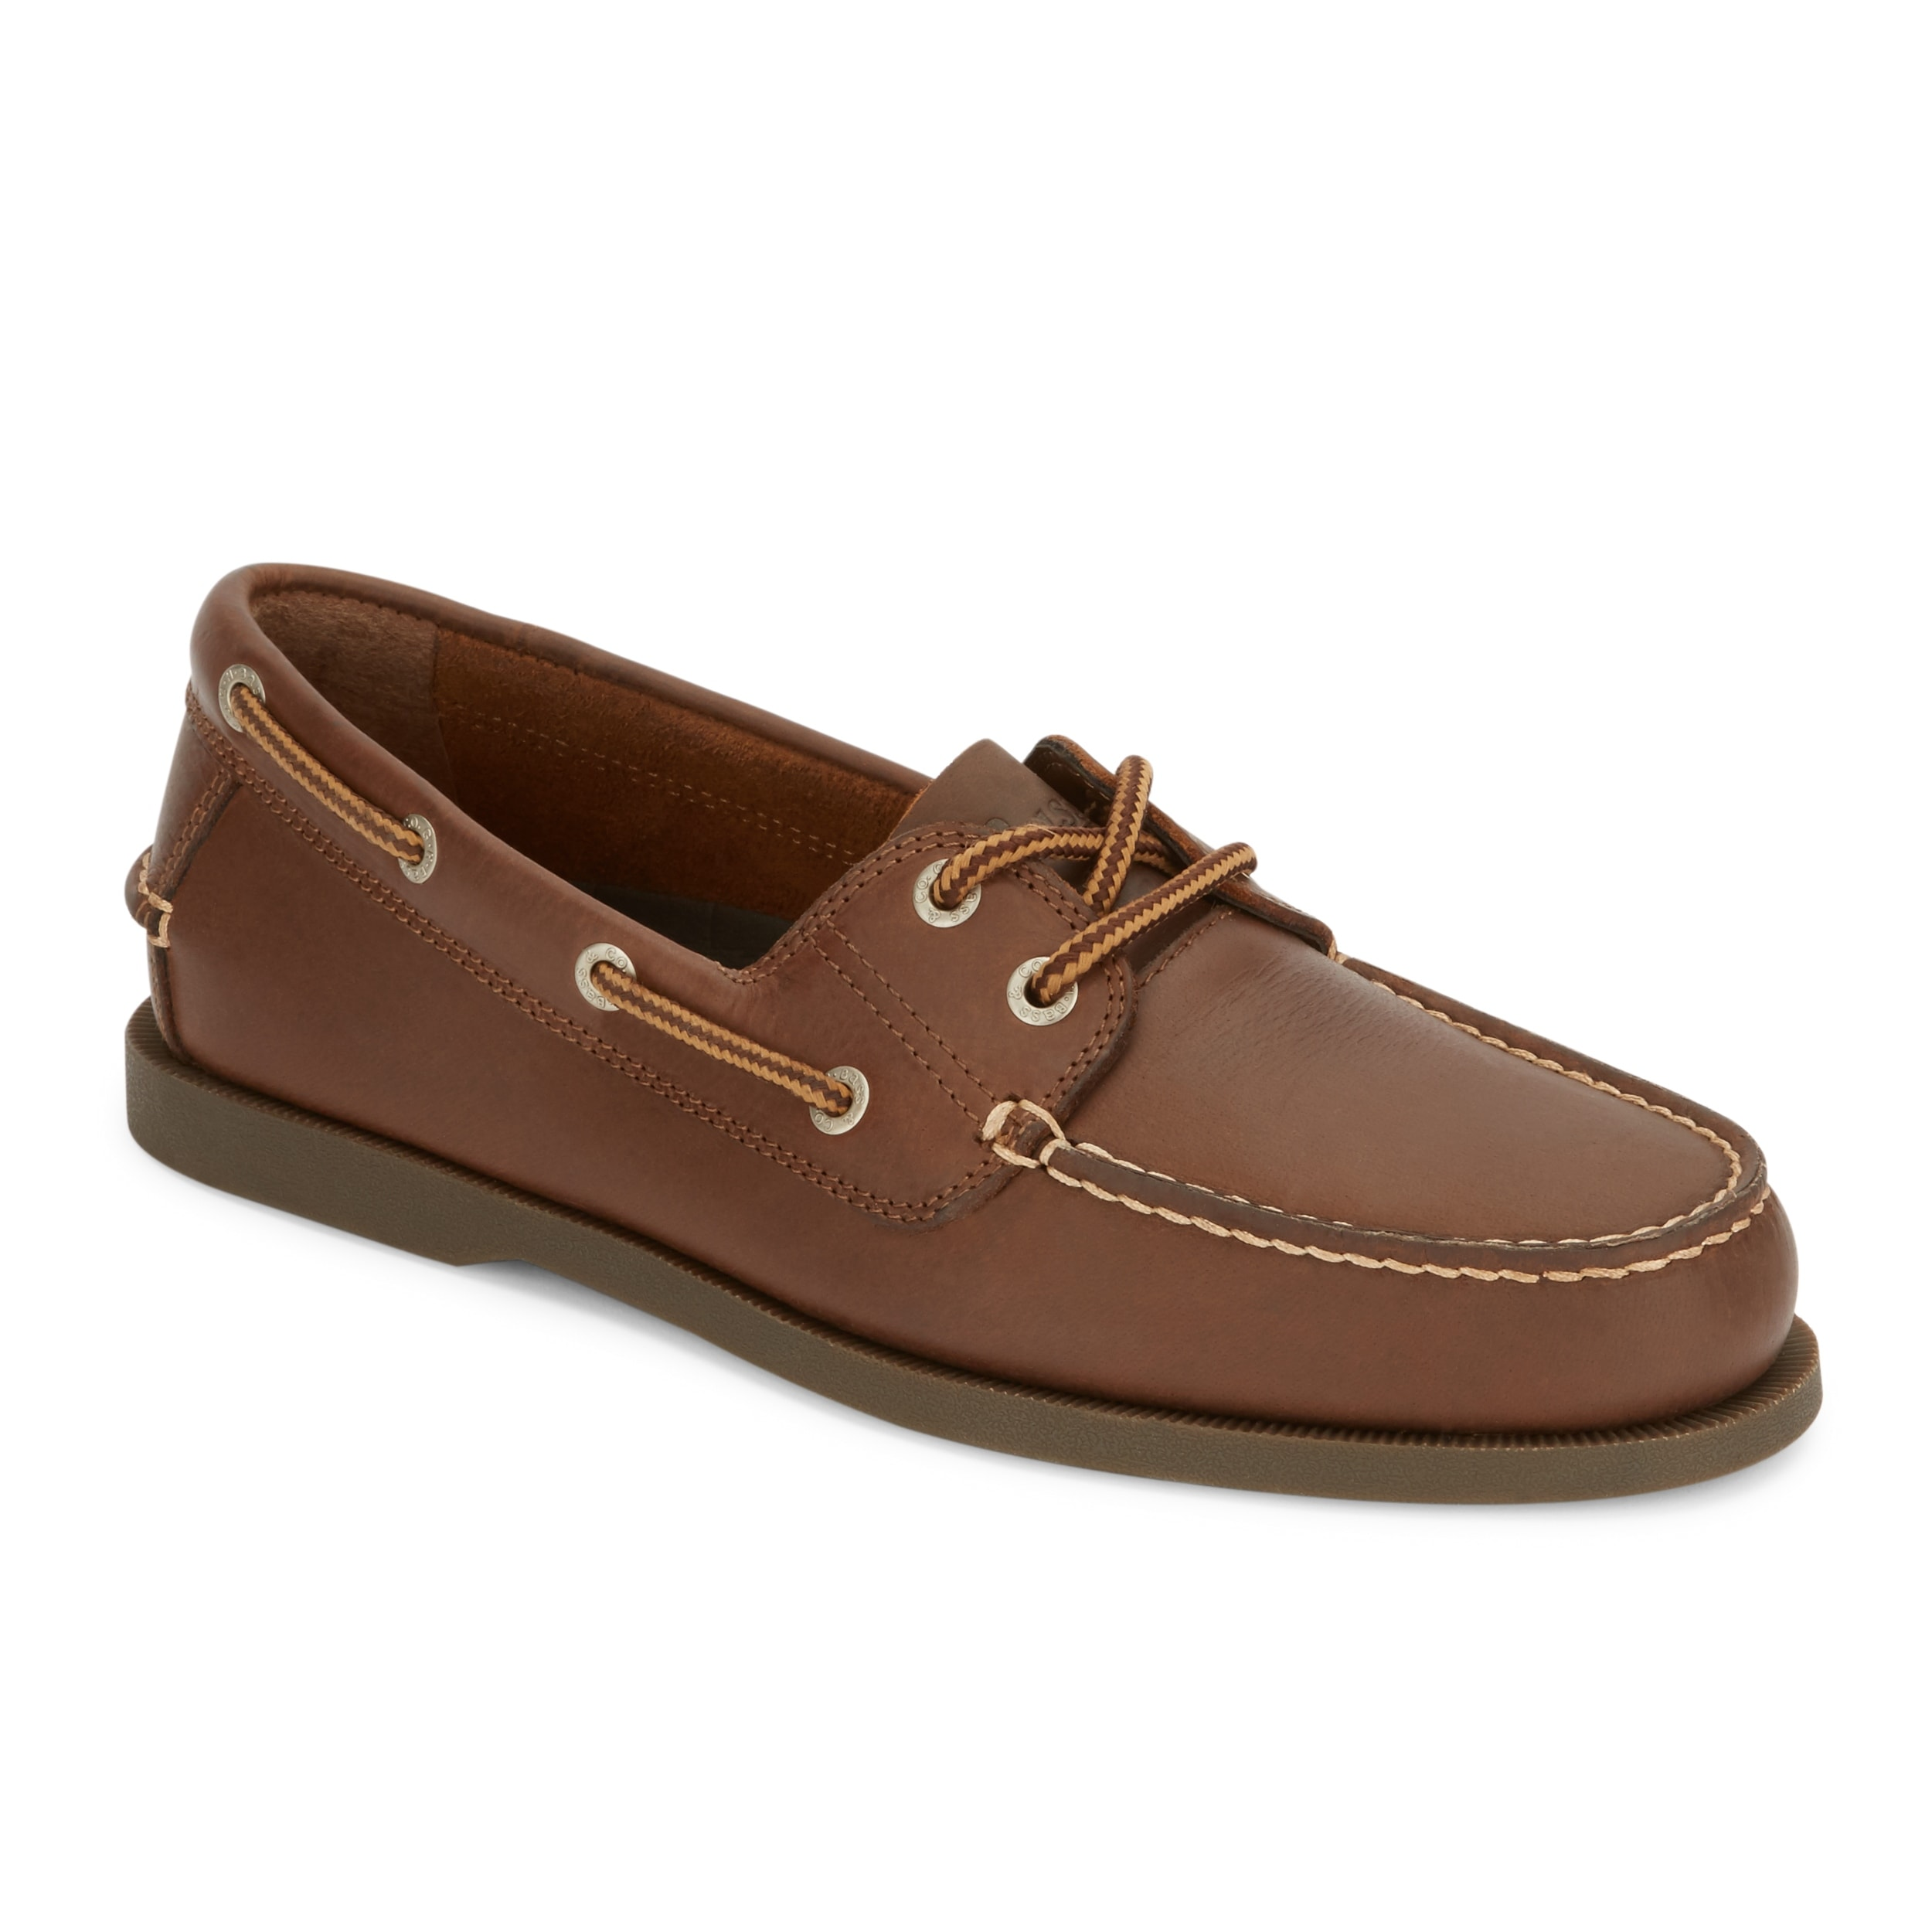 351b29bf4c6 Shop G.H. Bass   Co. Mens Asbury Classic Leather Boat Shoe - On Sale ...